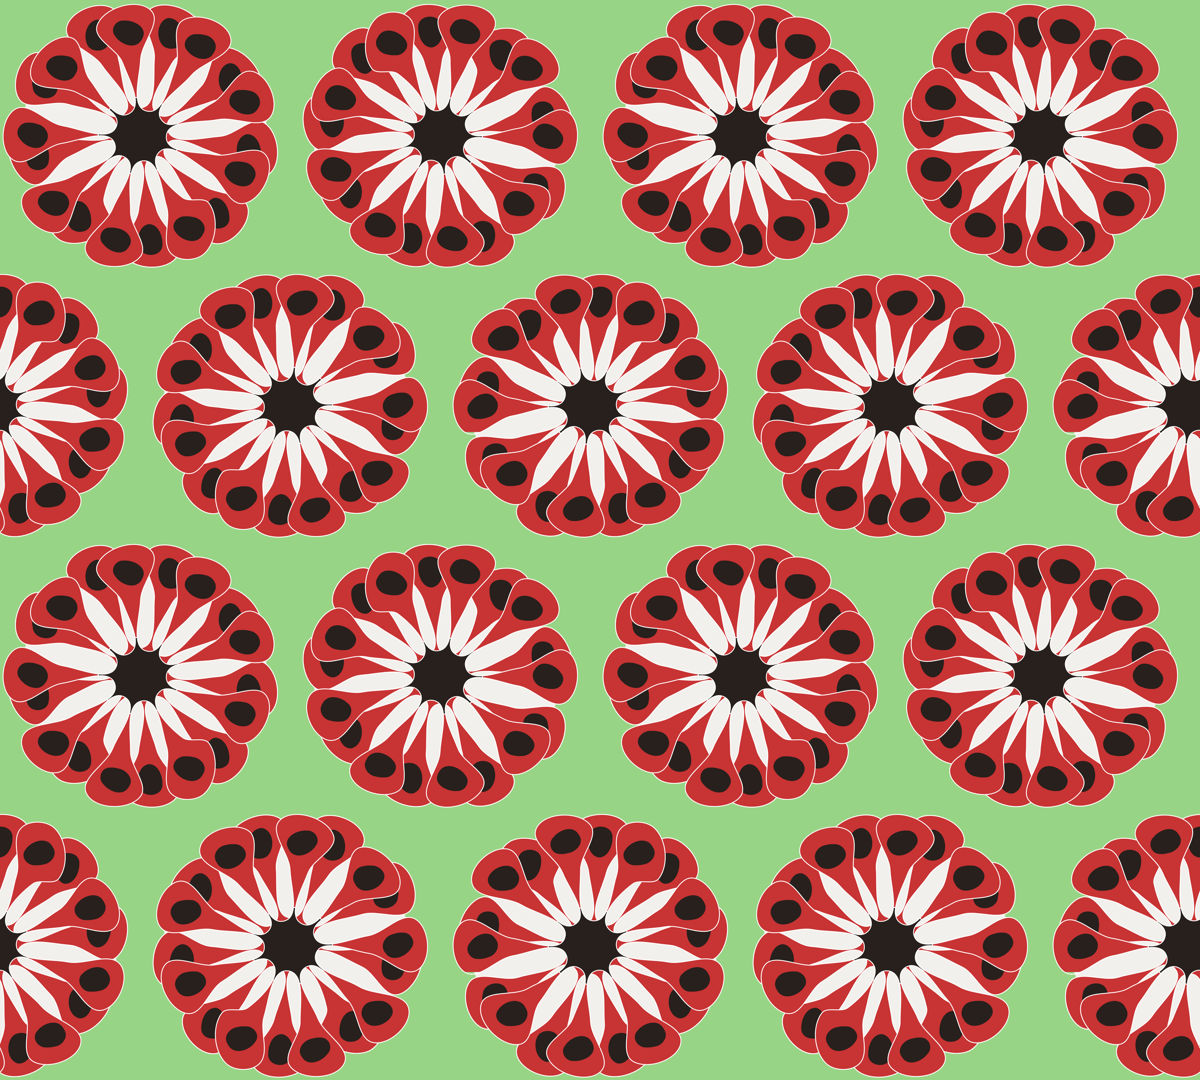 Red Poppies fabric by stephane on Spoonflower - custom fabric